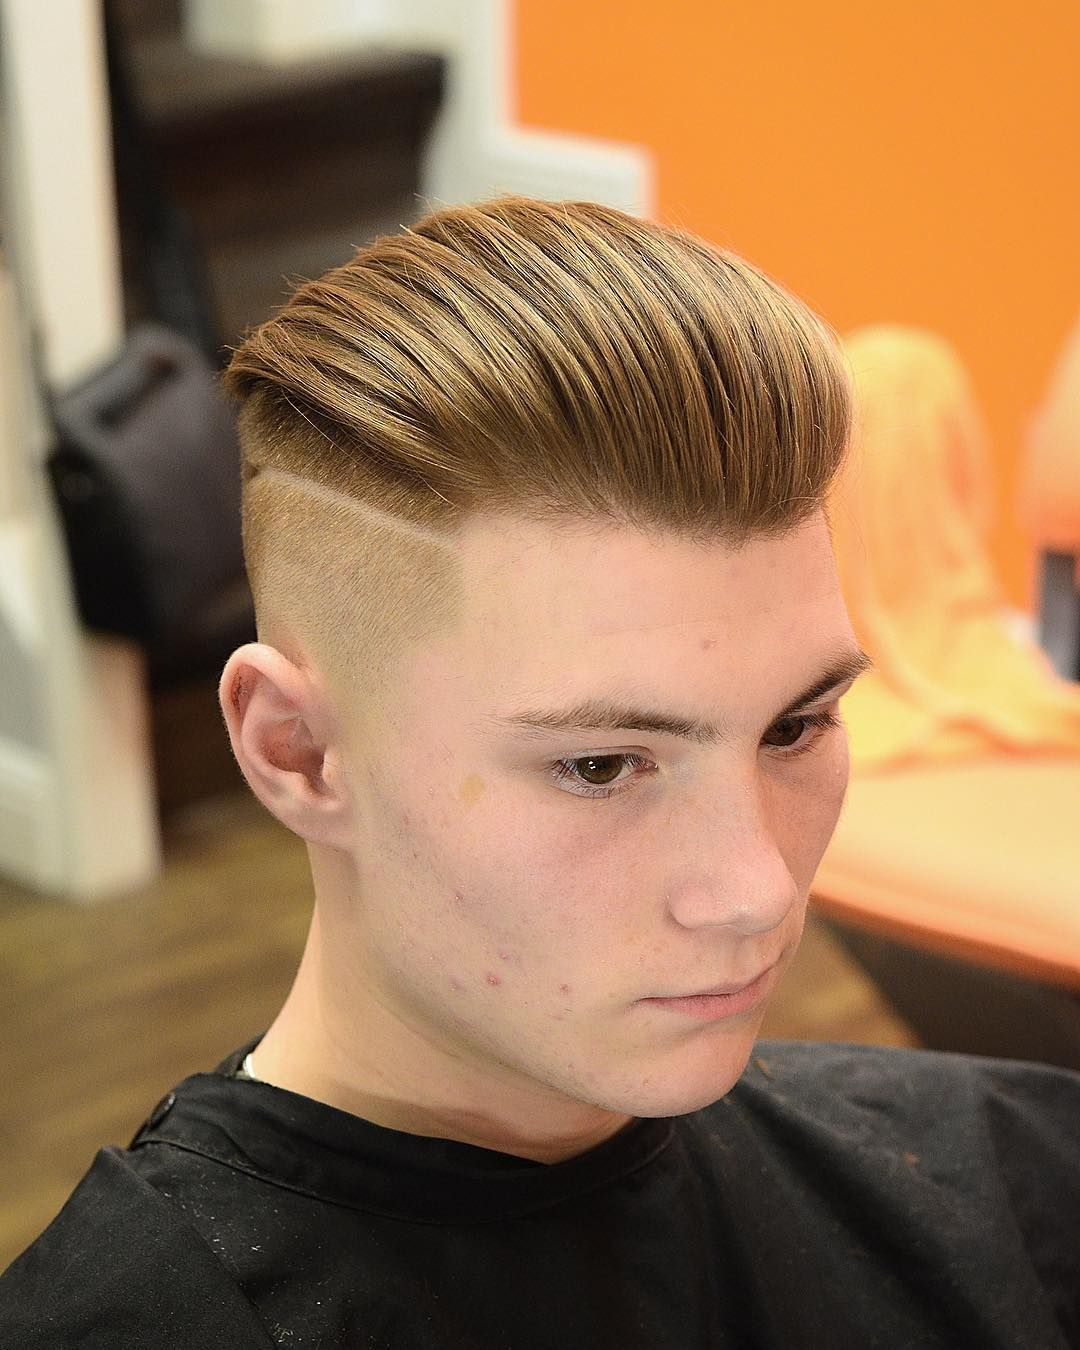 20 Fantastic Hairstyles For Men With Thin Hair Men S Hairstyles Thin Hair Men Long Hair Styles Men Haircuts For Men